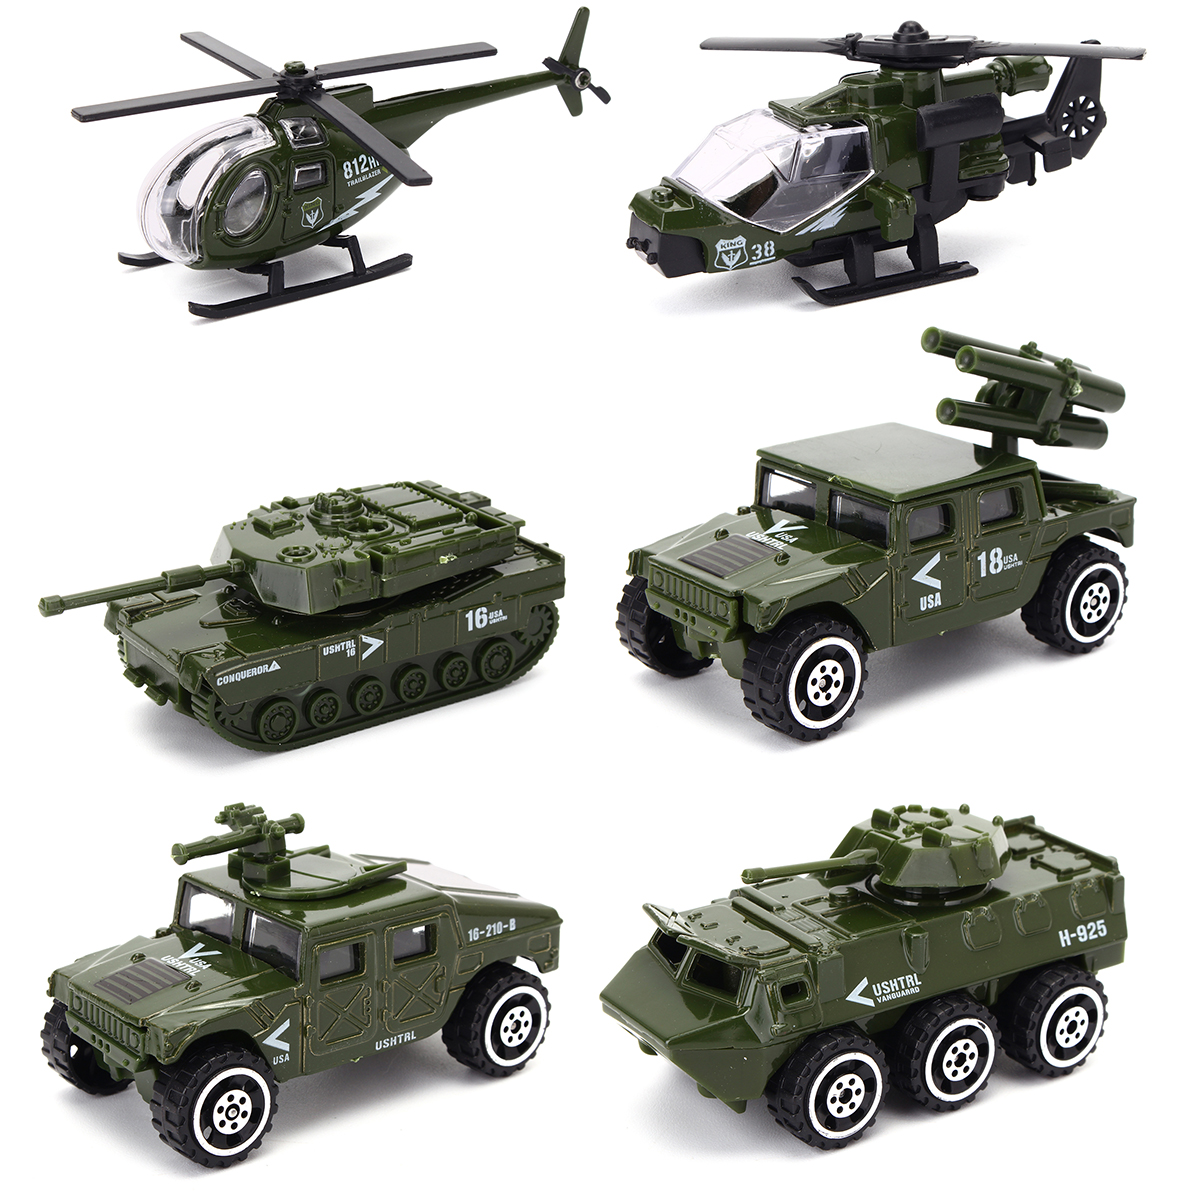 Meigar Car Model Toys Diecast Vehicles Toys Truck Tan Mini Helicopter 6 Pcs in 1 Set for Kids Boys Gift